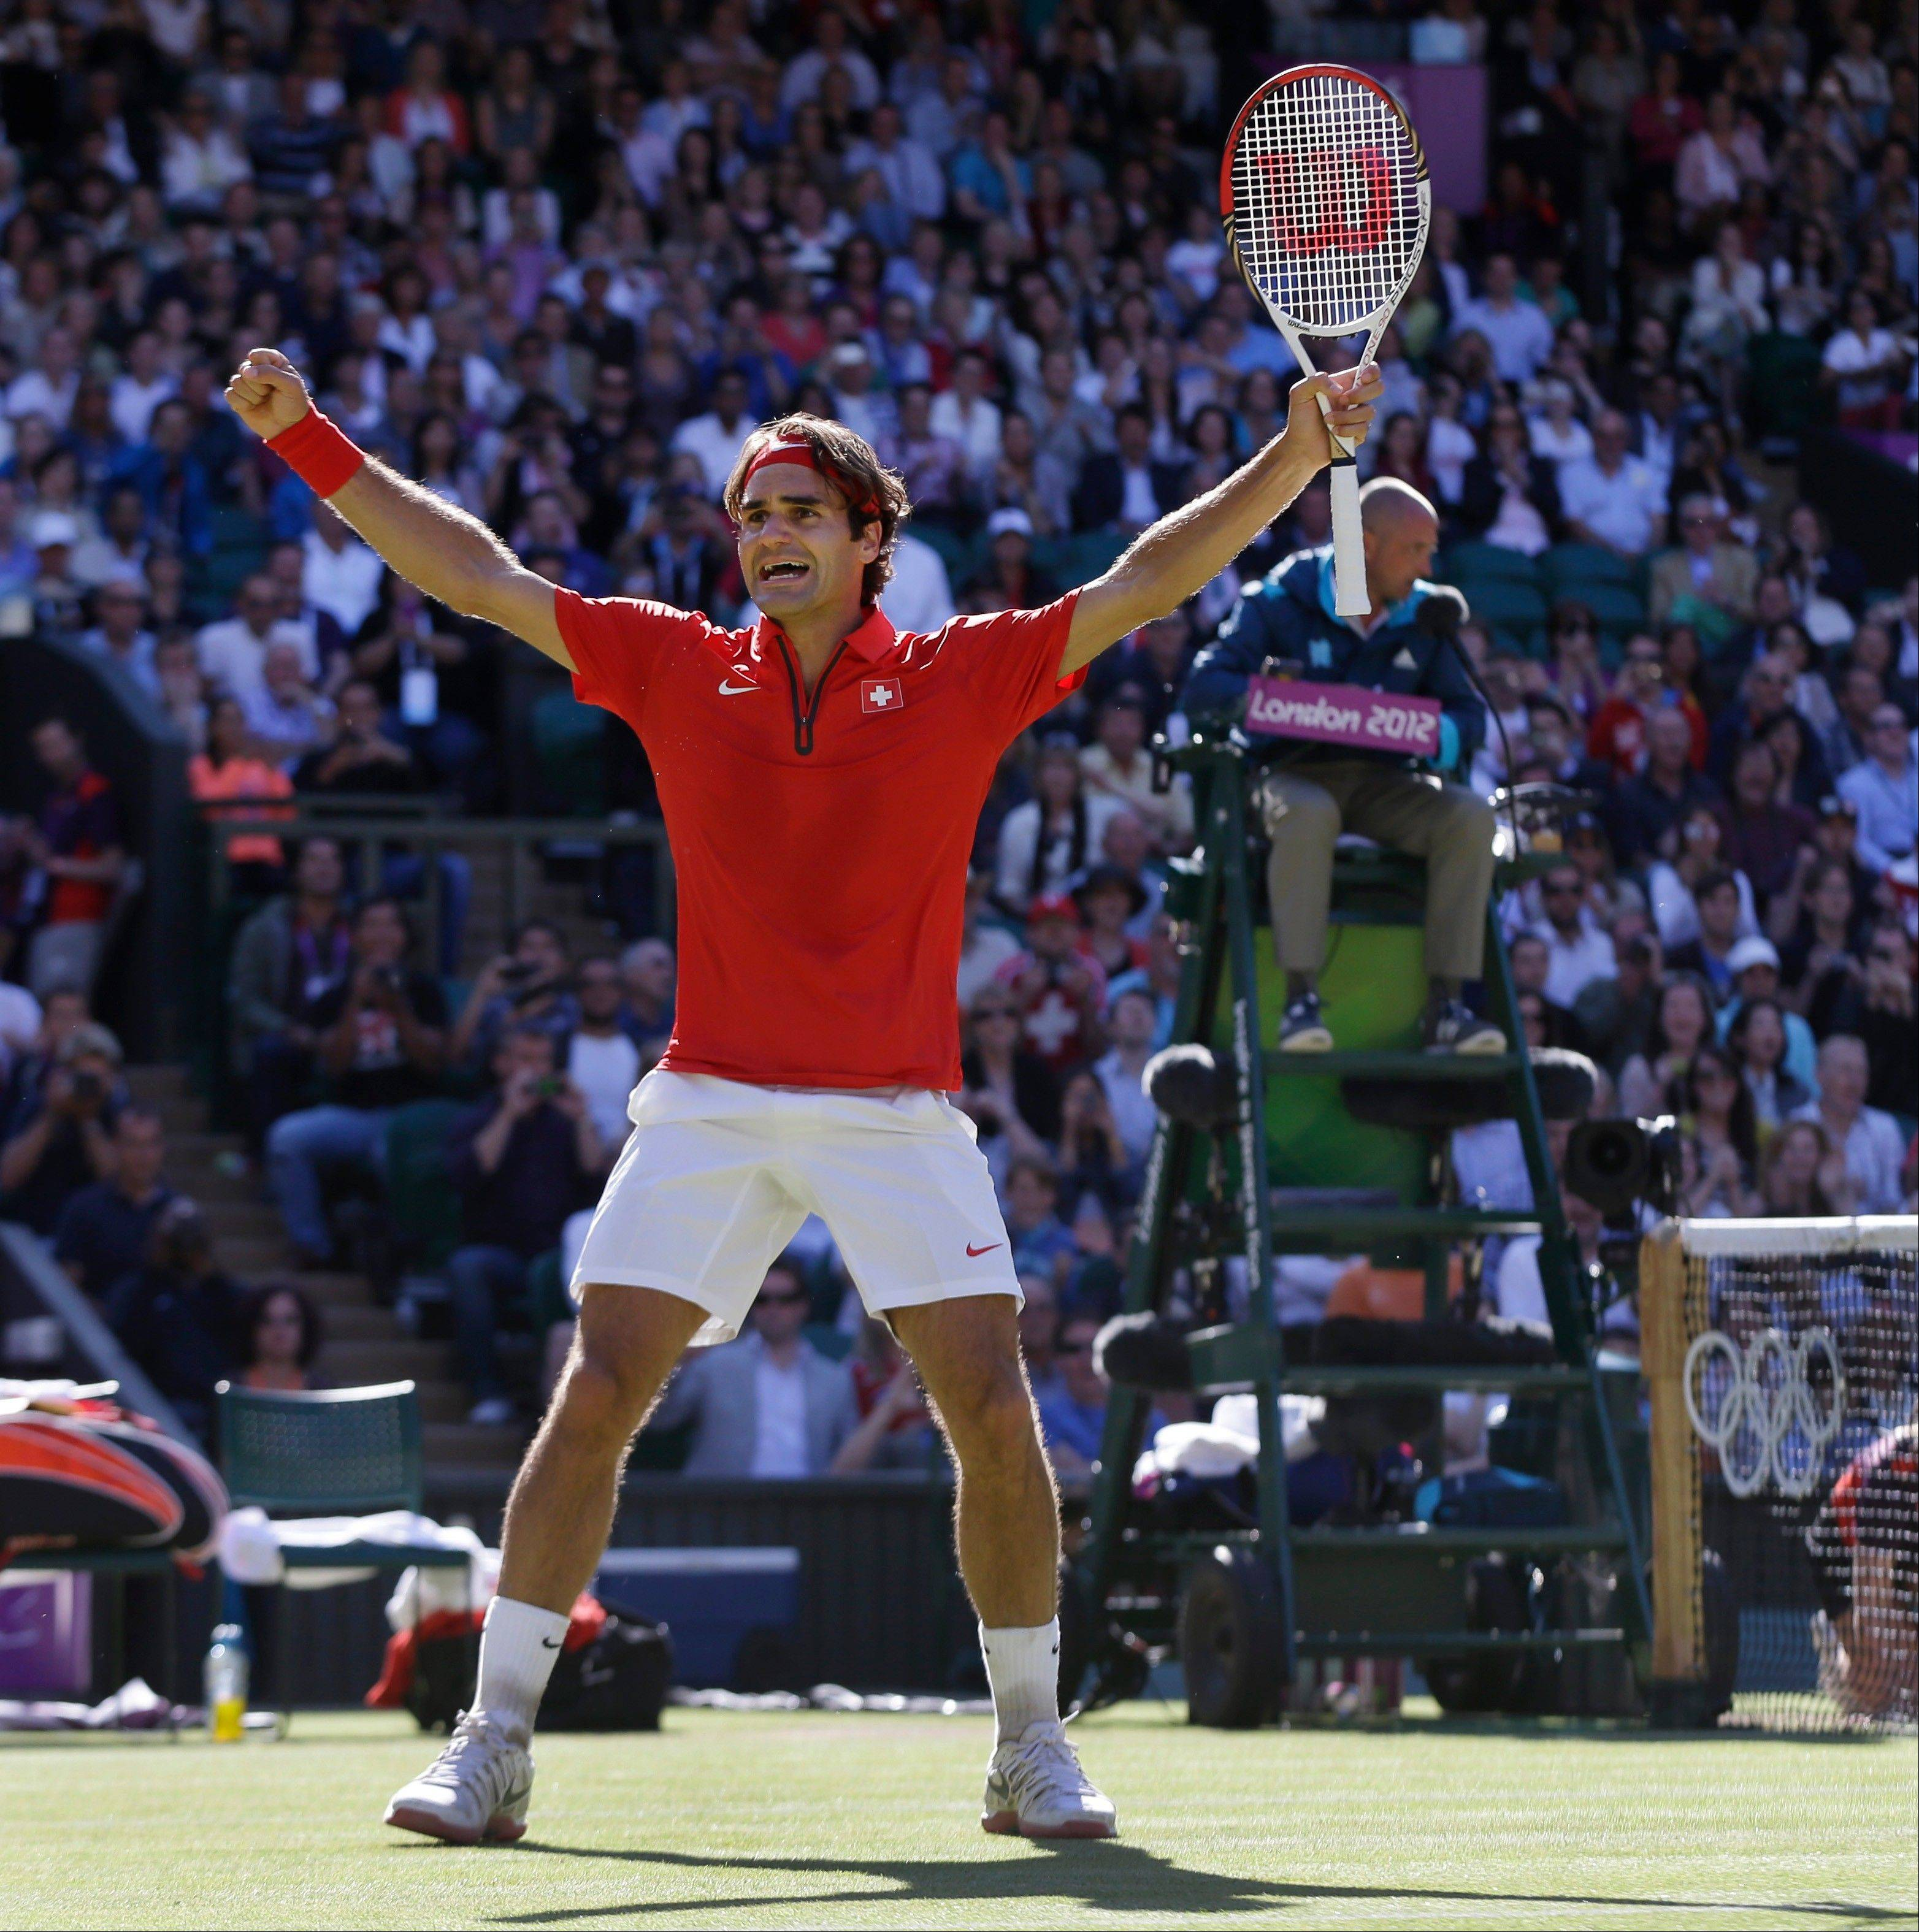 Roger Federer celebrates Friday after defeating Juan Martin del Potro in the Olympic semifinal at the All England Lawn Tennis Club in Wimbledon.